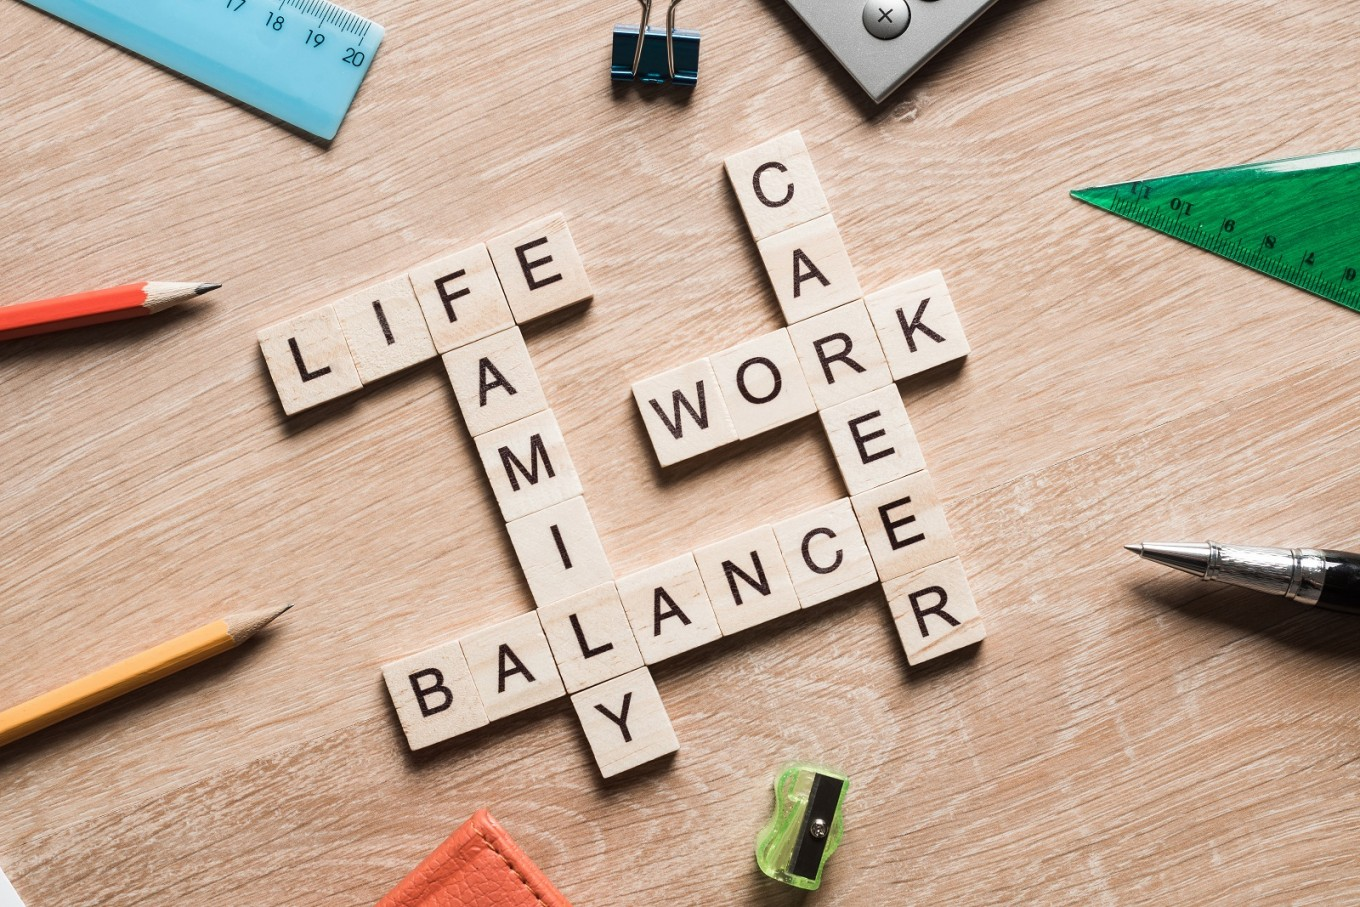 A four-day work week experiment in New Zealand has shown significant improvement in productivity and work-life balance among participants. (Shutterstock/Khakimullin Aleksandr)